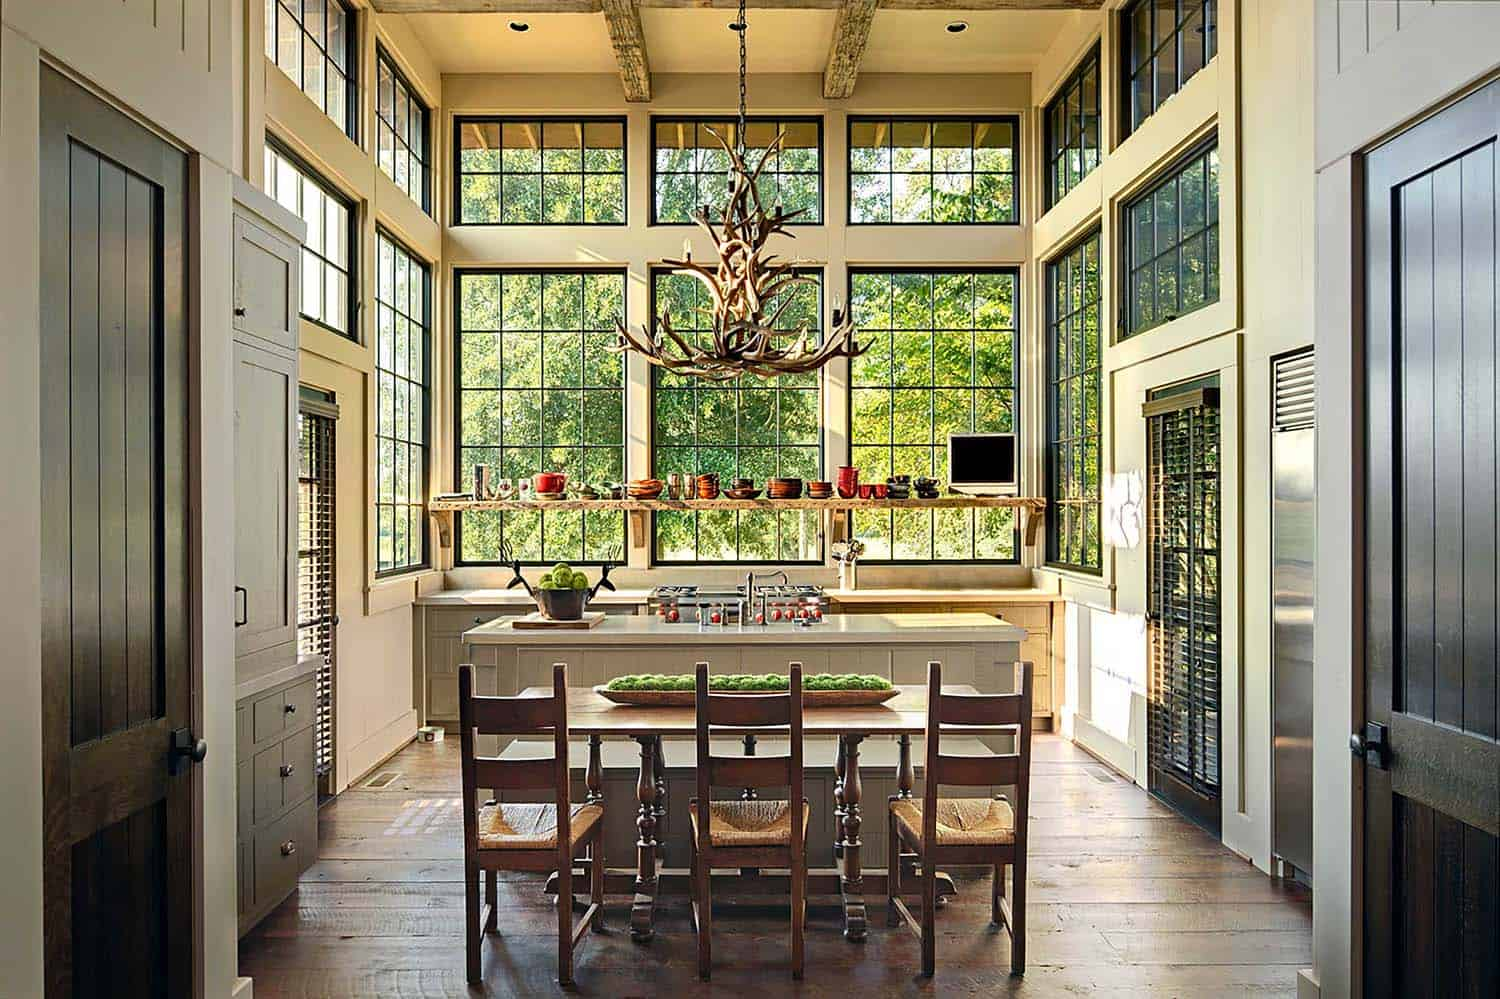 Rustic-Modern Farmhouse-Jeffrey Dungan Architects-02-1 Kindesign